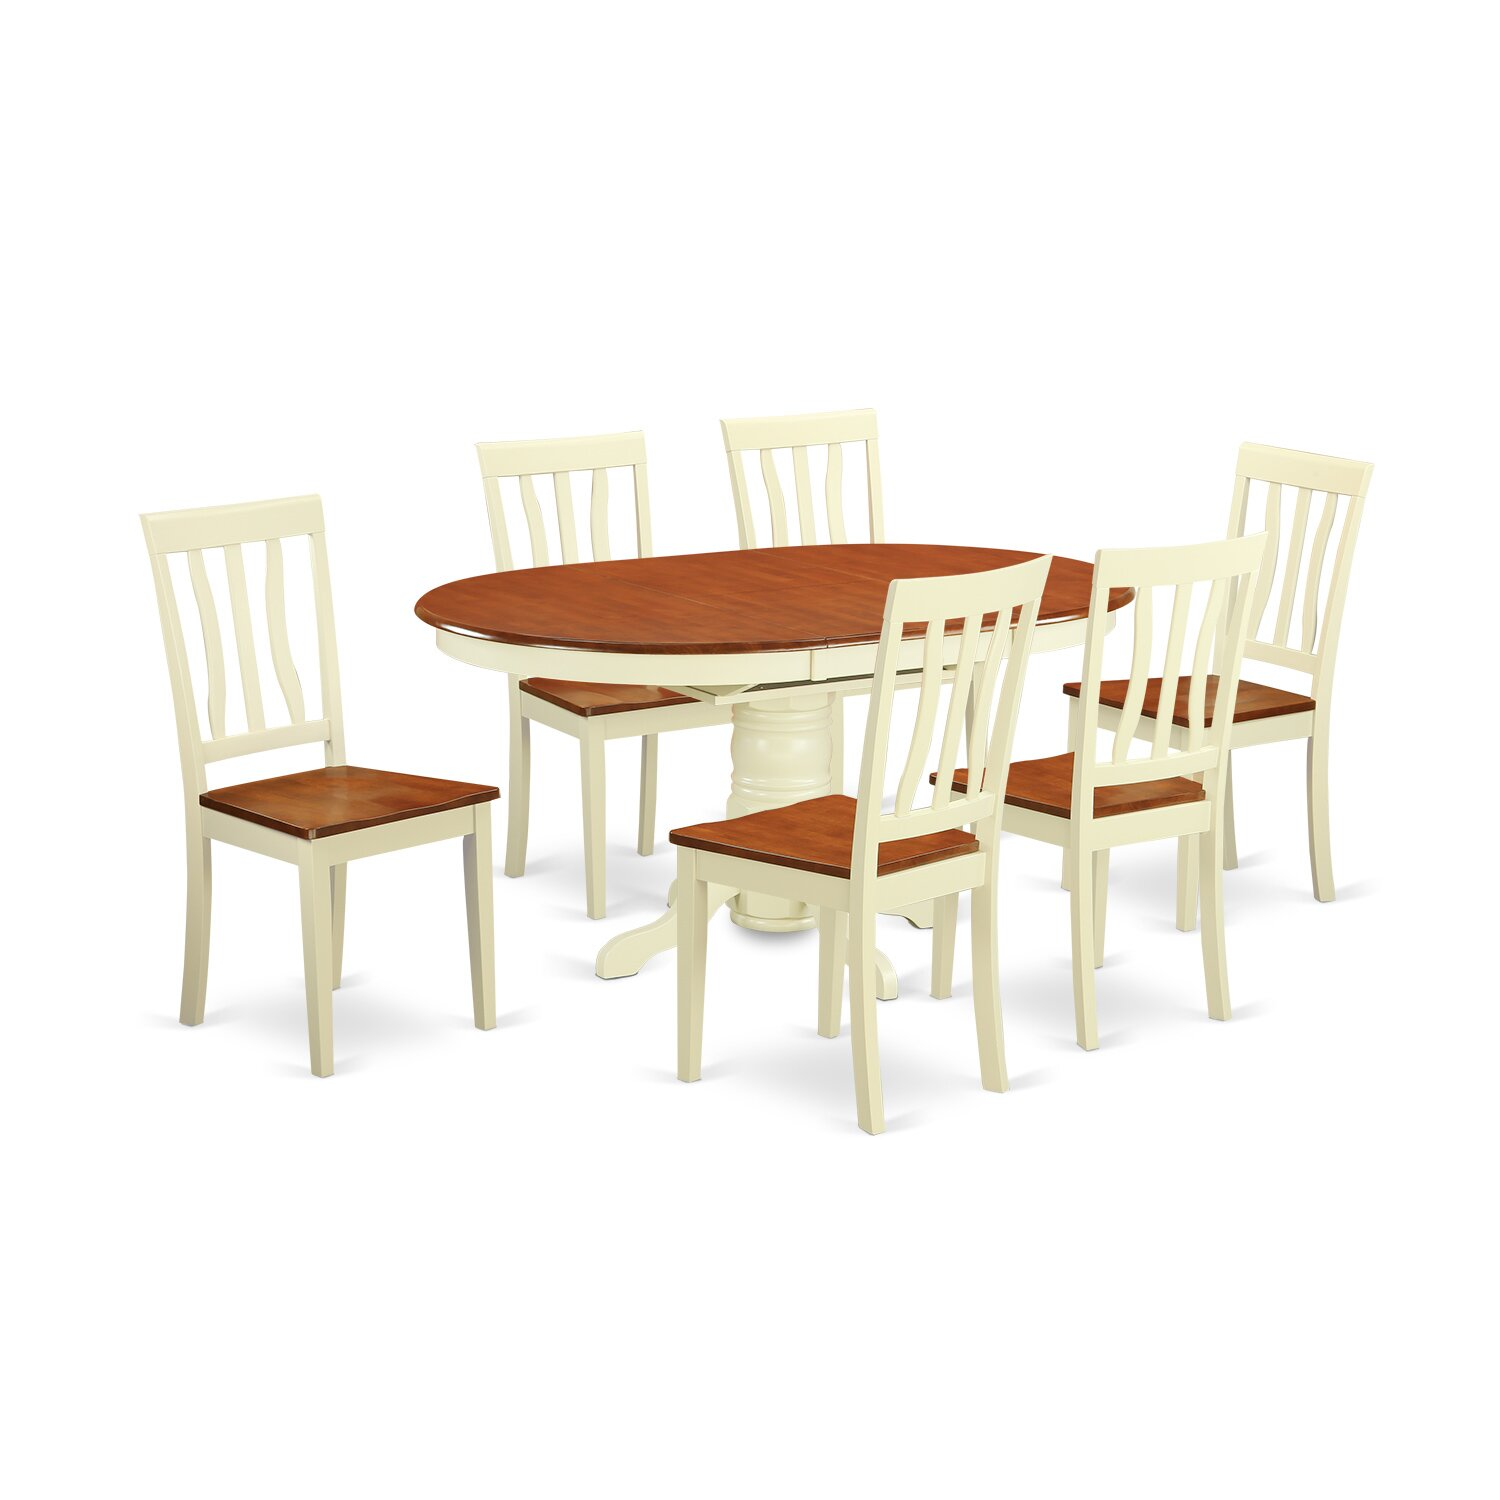 Wooden importers avon 7 piece dining set reviews wayfair for Wooden dining set